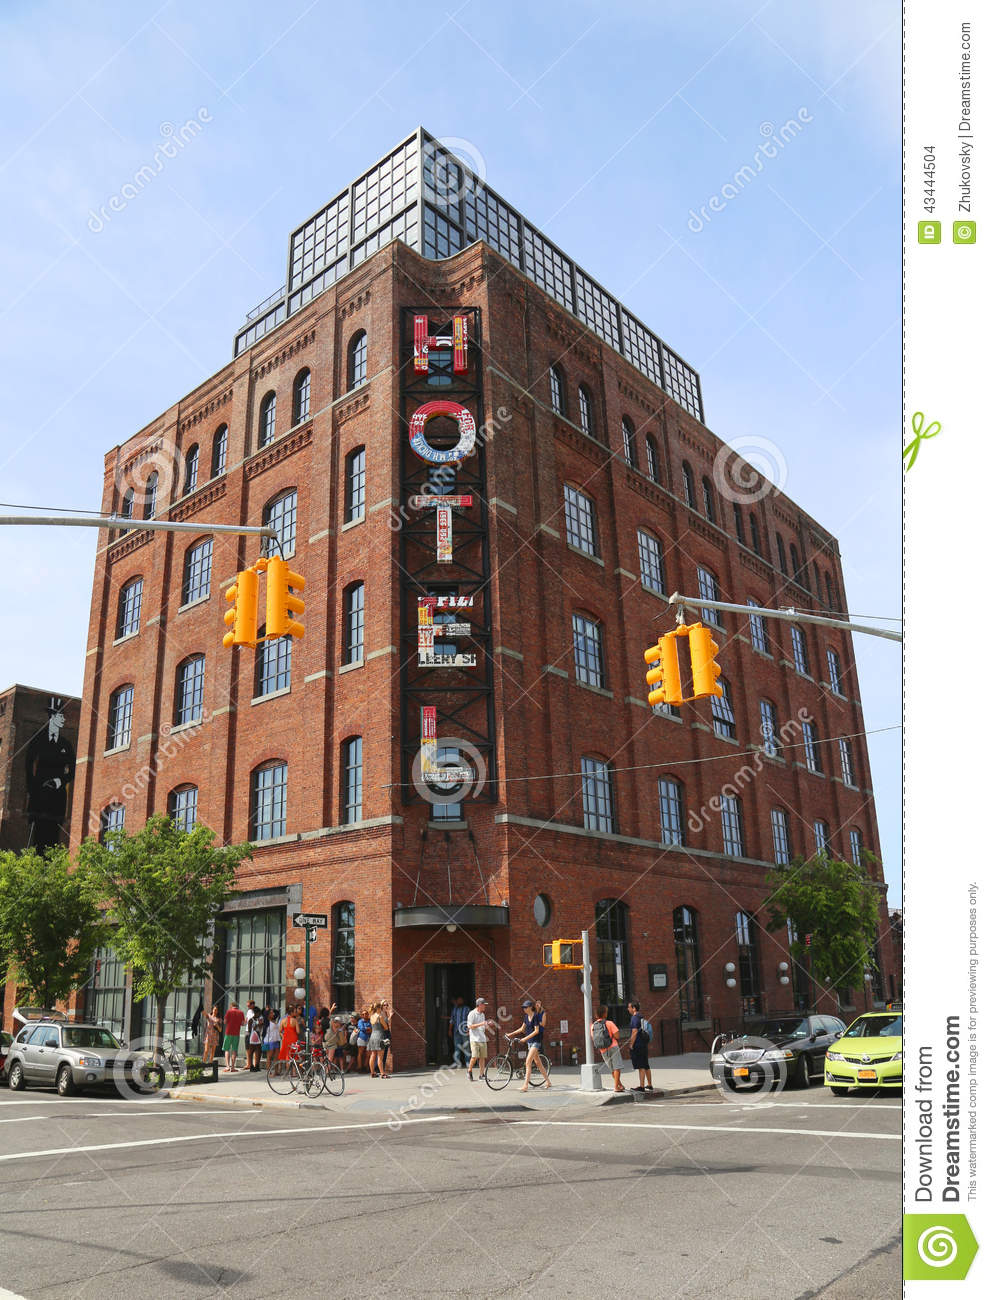 Boutique wythe hotel in williamsburg section in brooklyn for Design hotel williamsburg